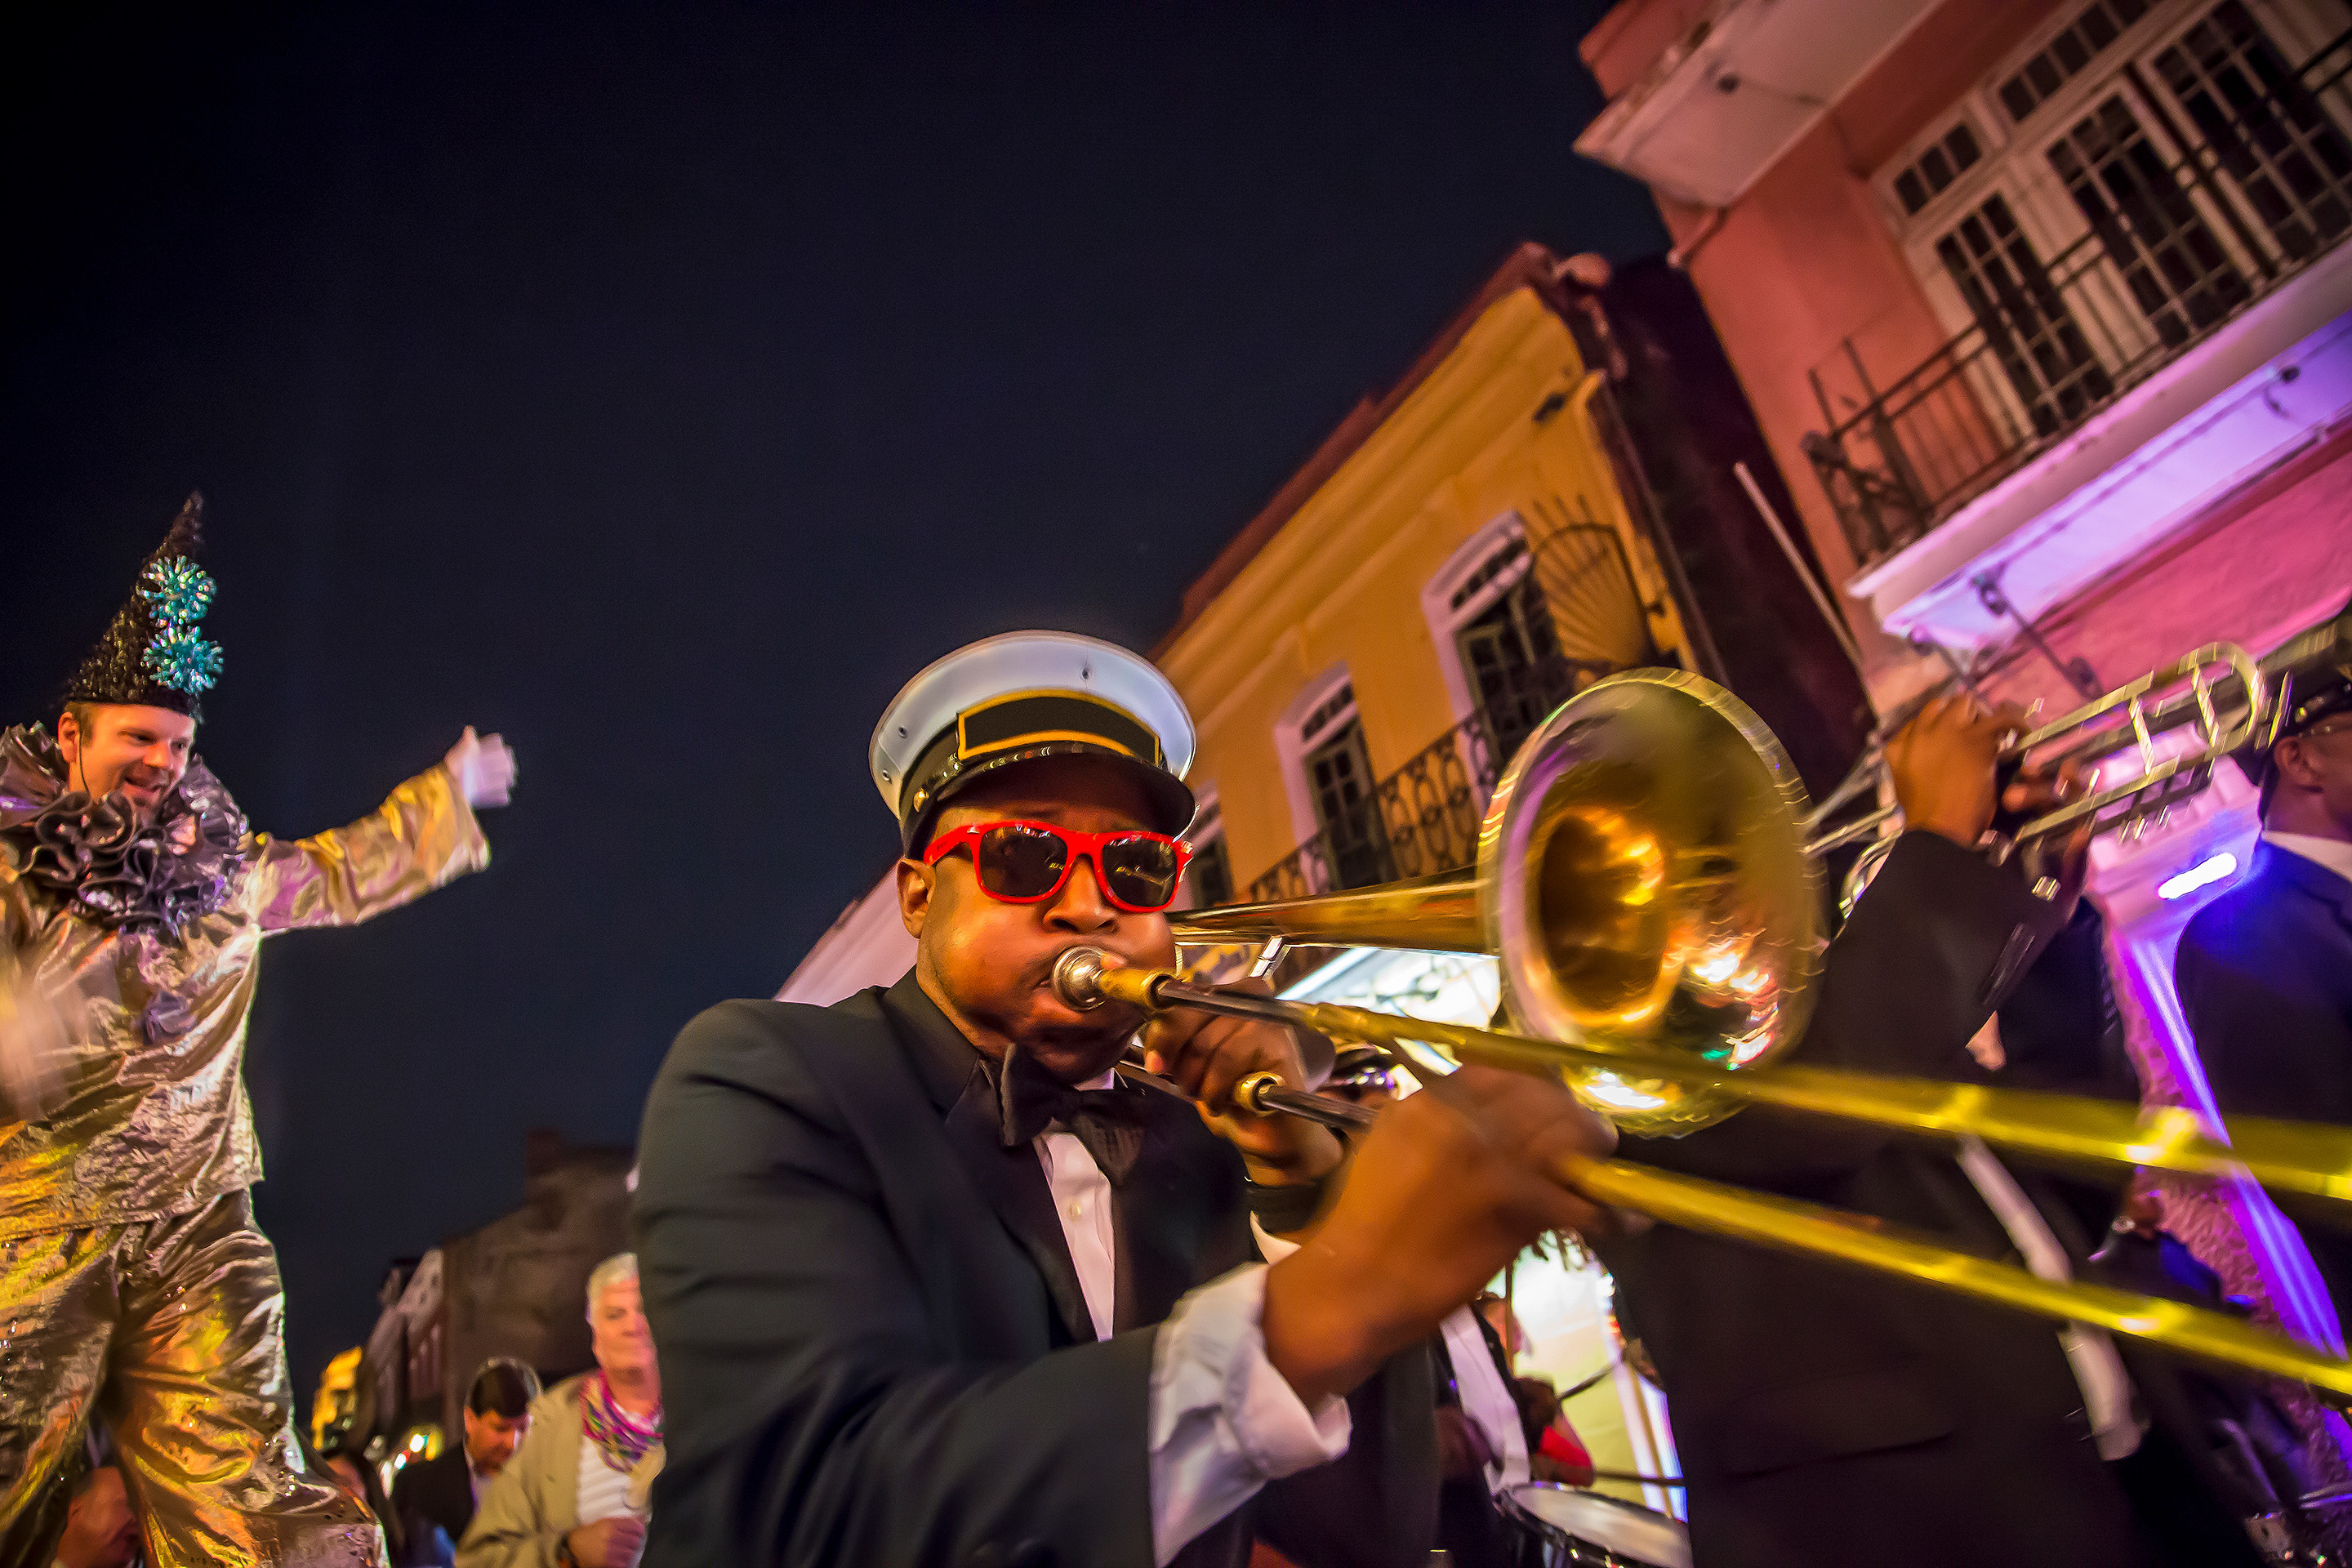 Photo by Todd Coleman courtesy of the New Orleans Convention and Visitors Bureau